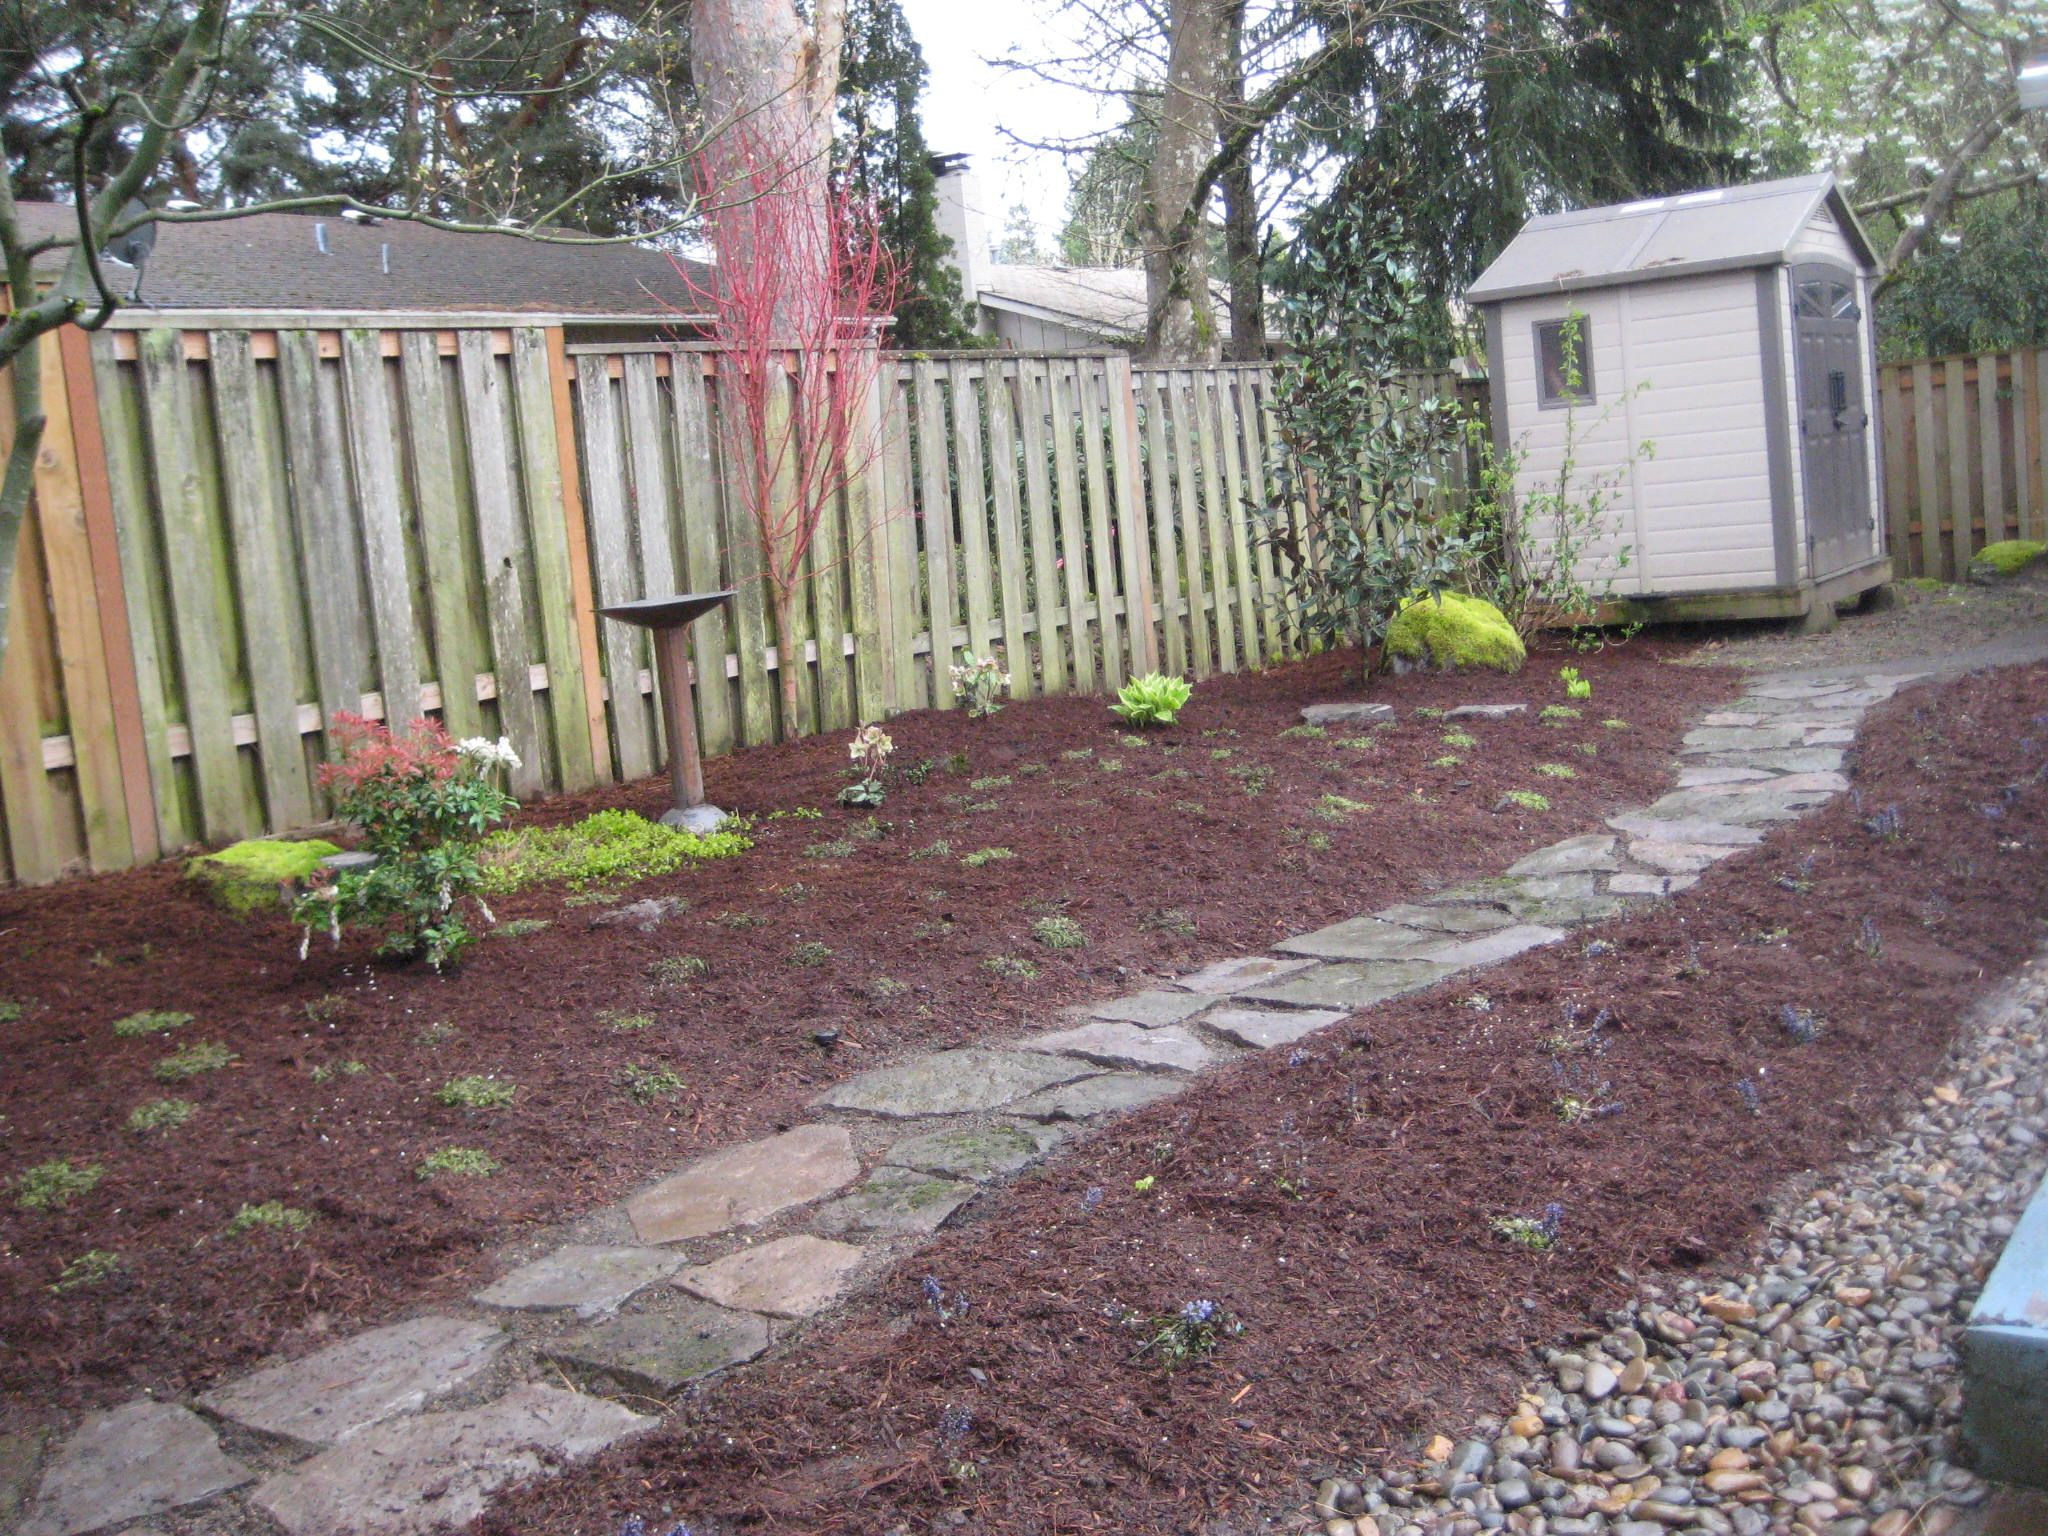 Best ideas about Dog Friendly Backyard . Save or Pin Cheap Backyard Ideas Dog Friendly Now.